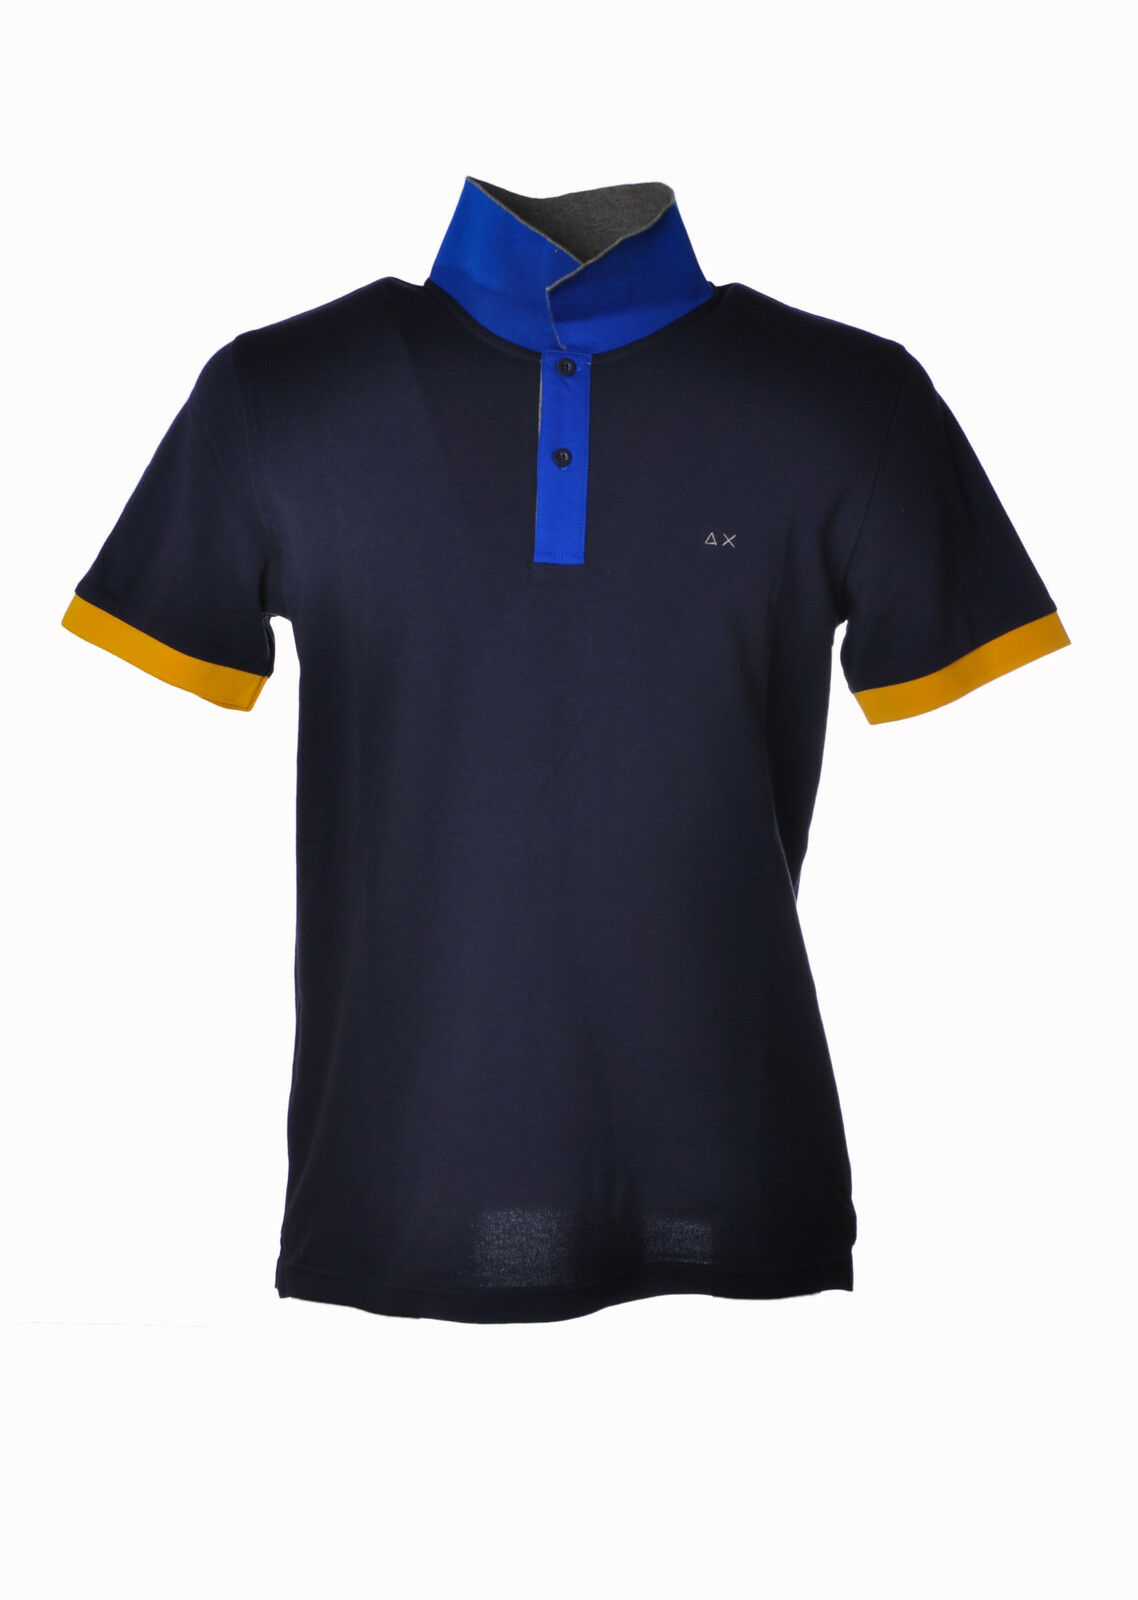 Sun 68 - Topwear-Polo - Man - bluee - 3199806C195014